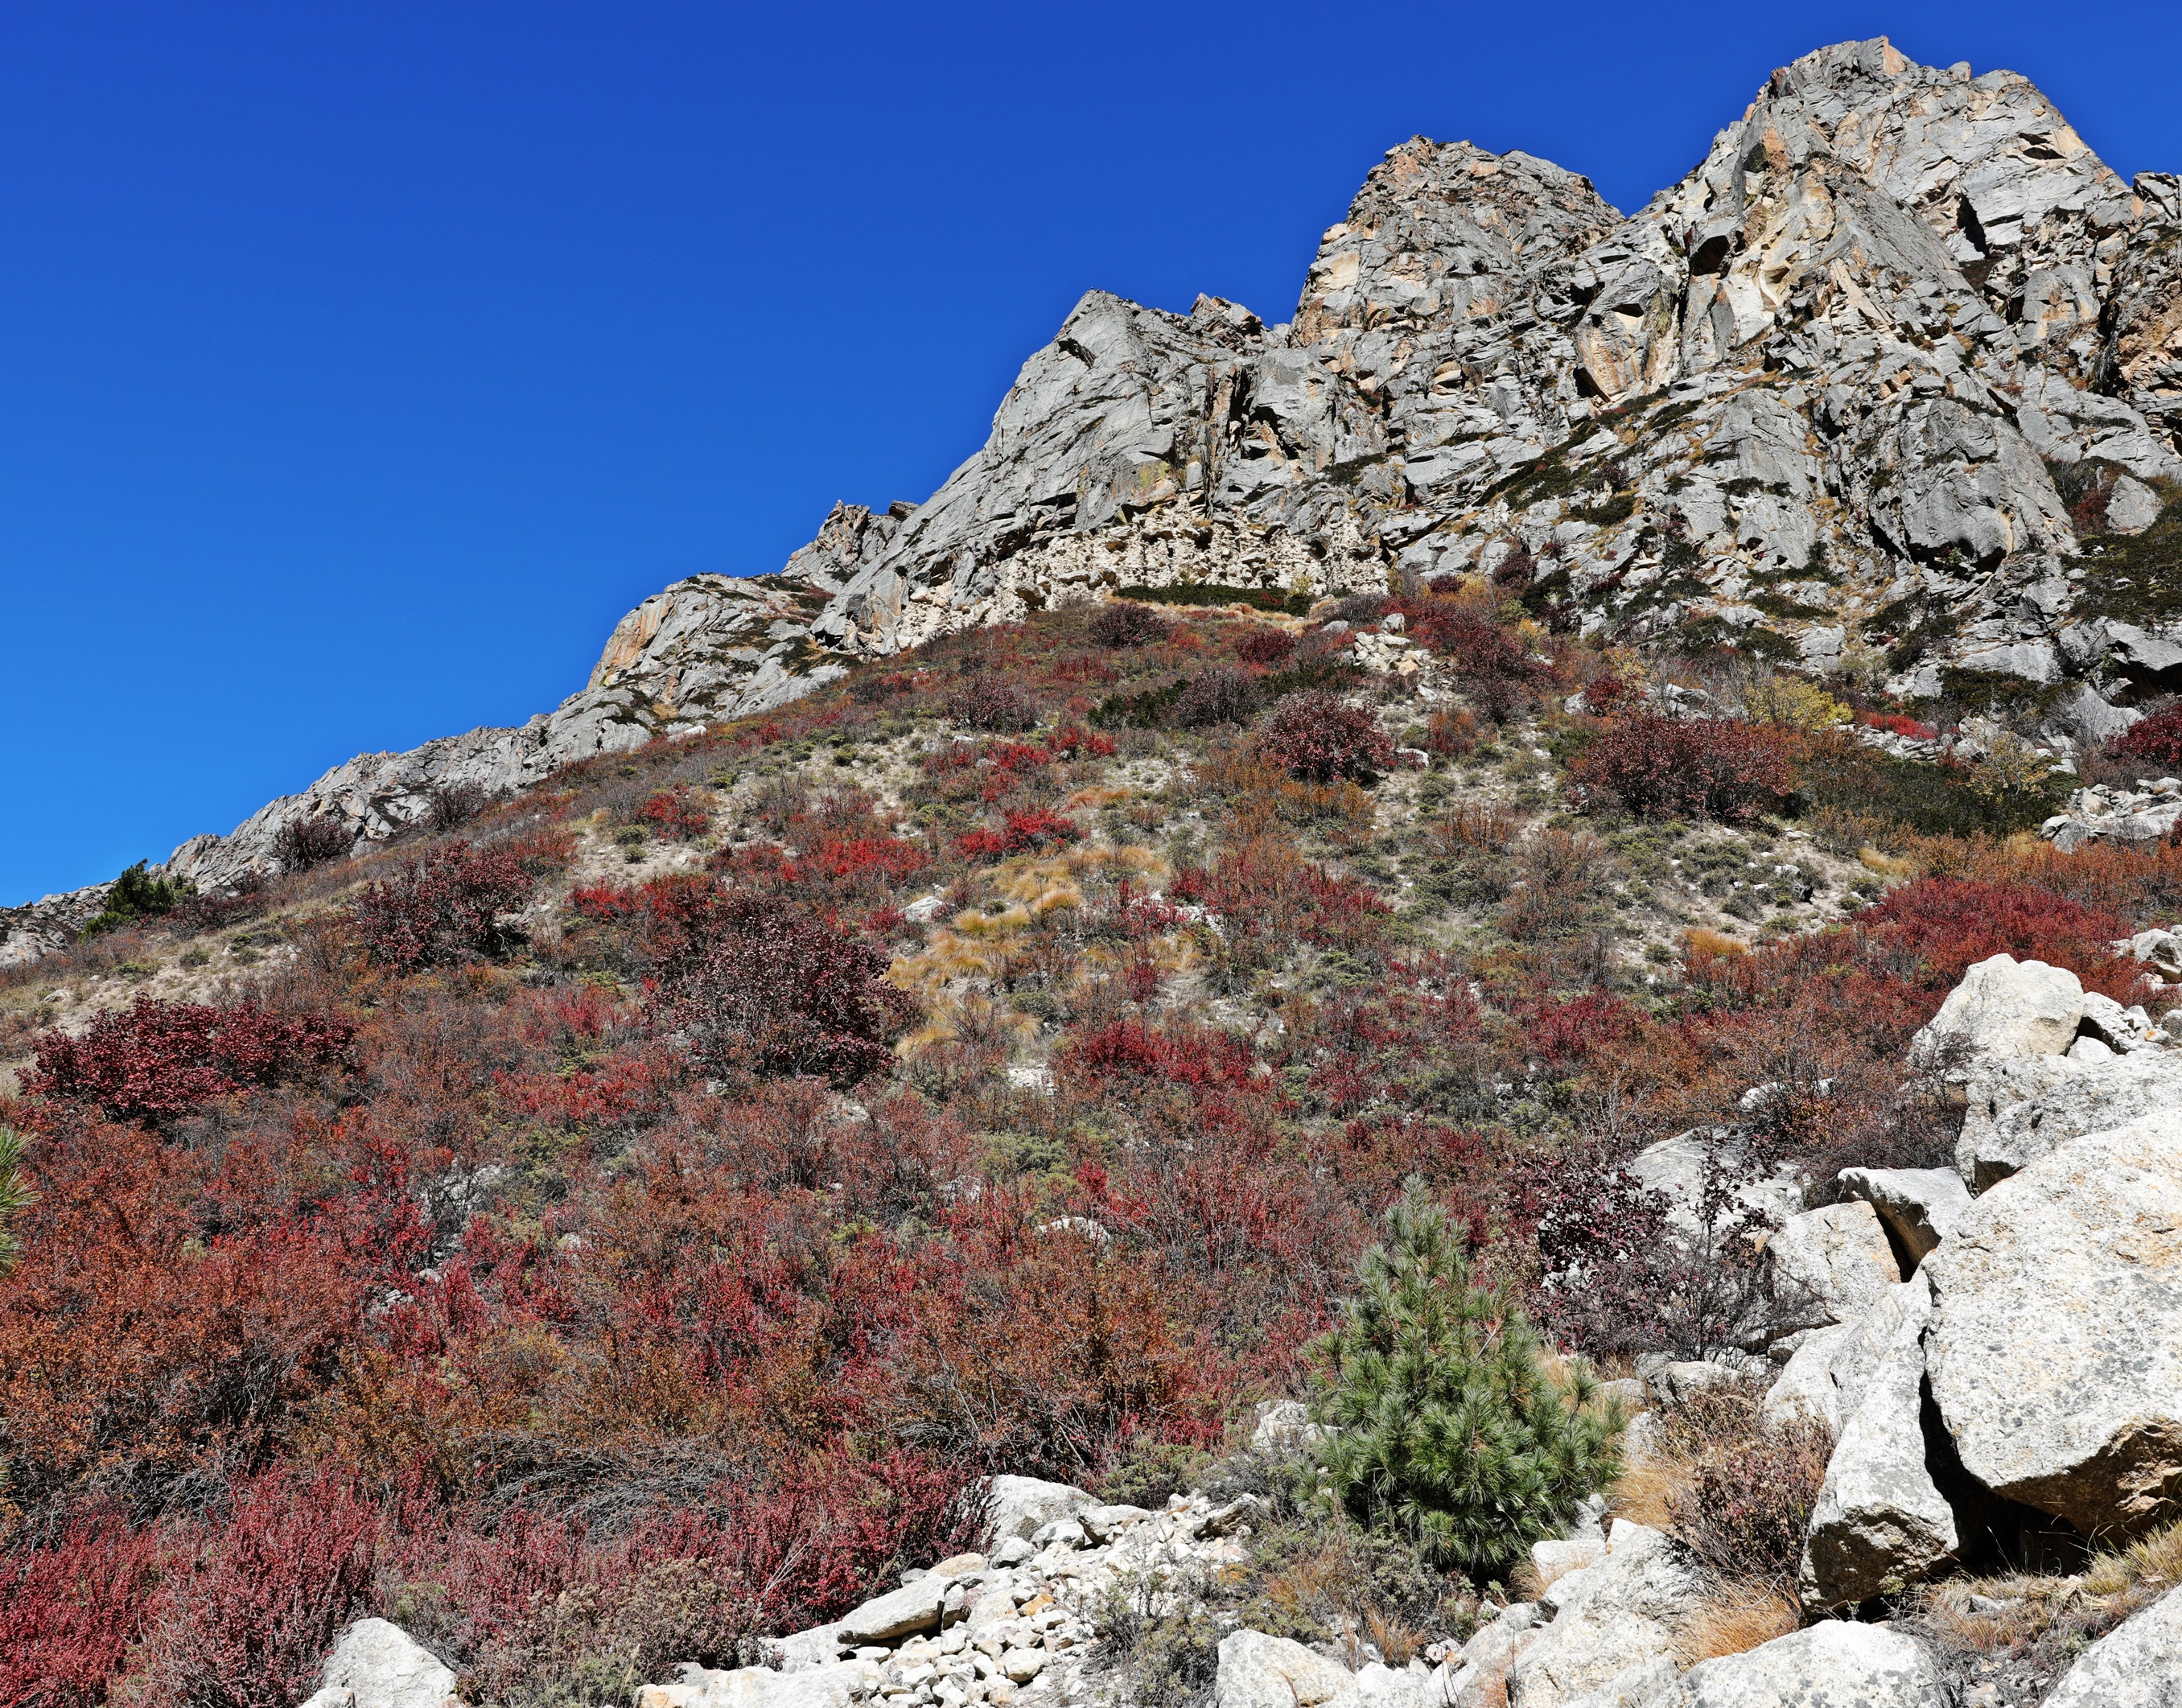 Fall colours and rock walls on the trek